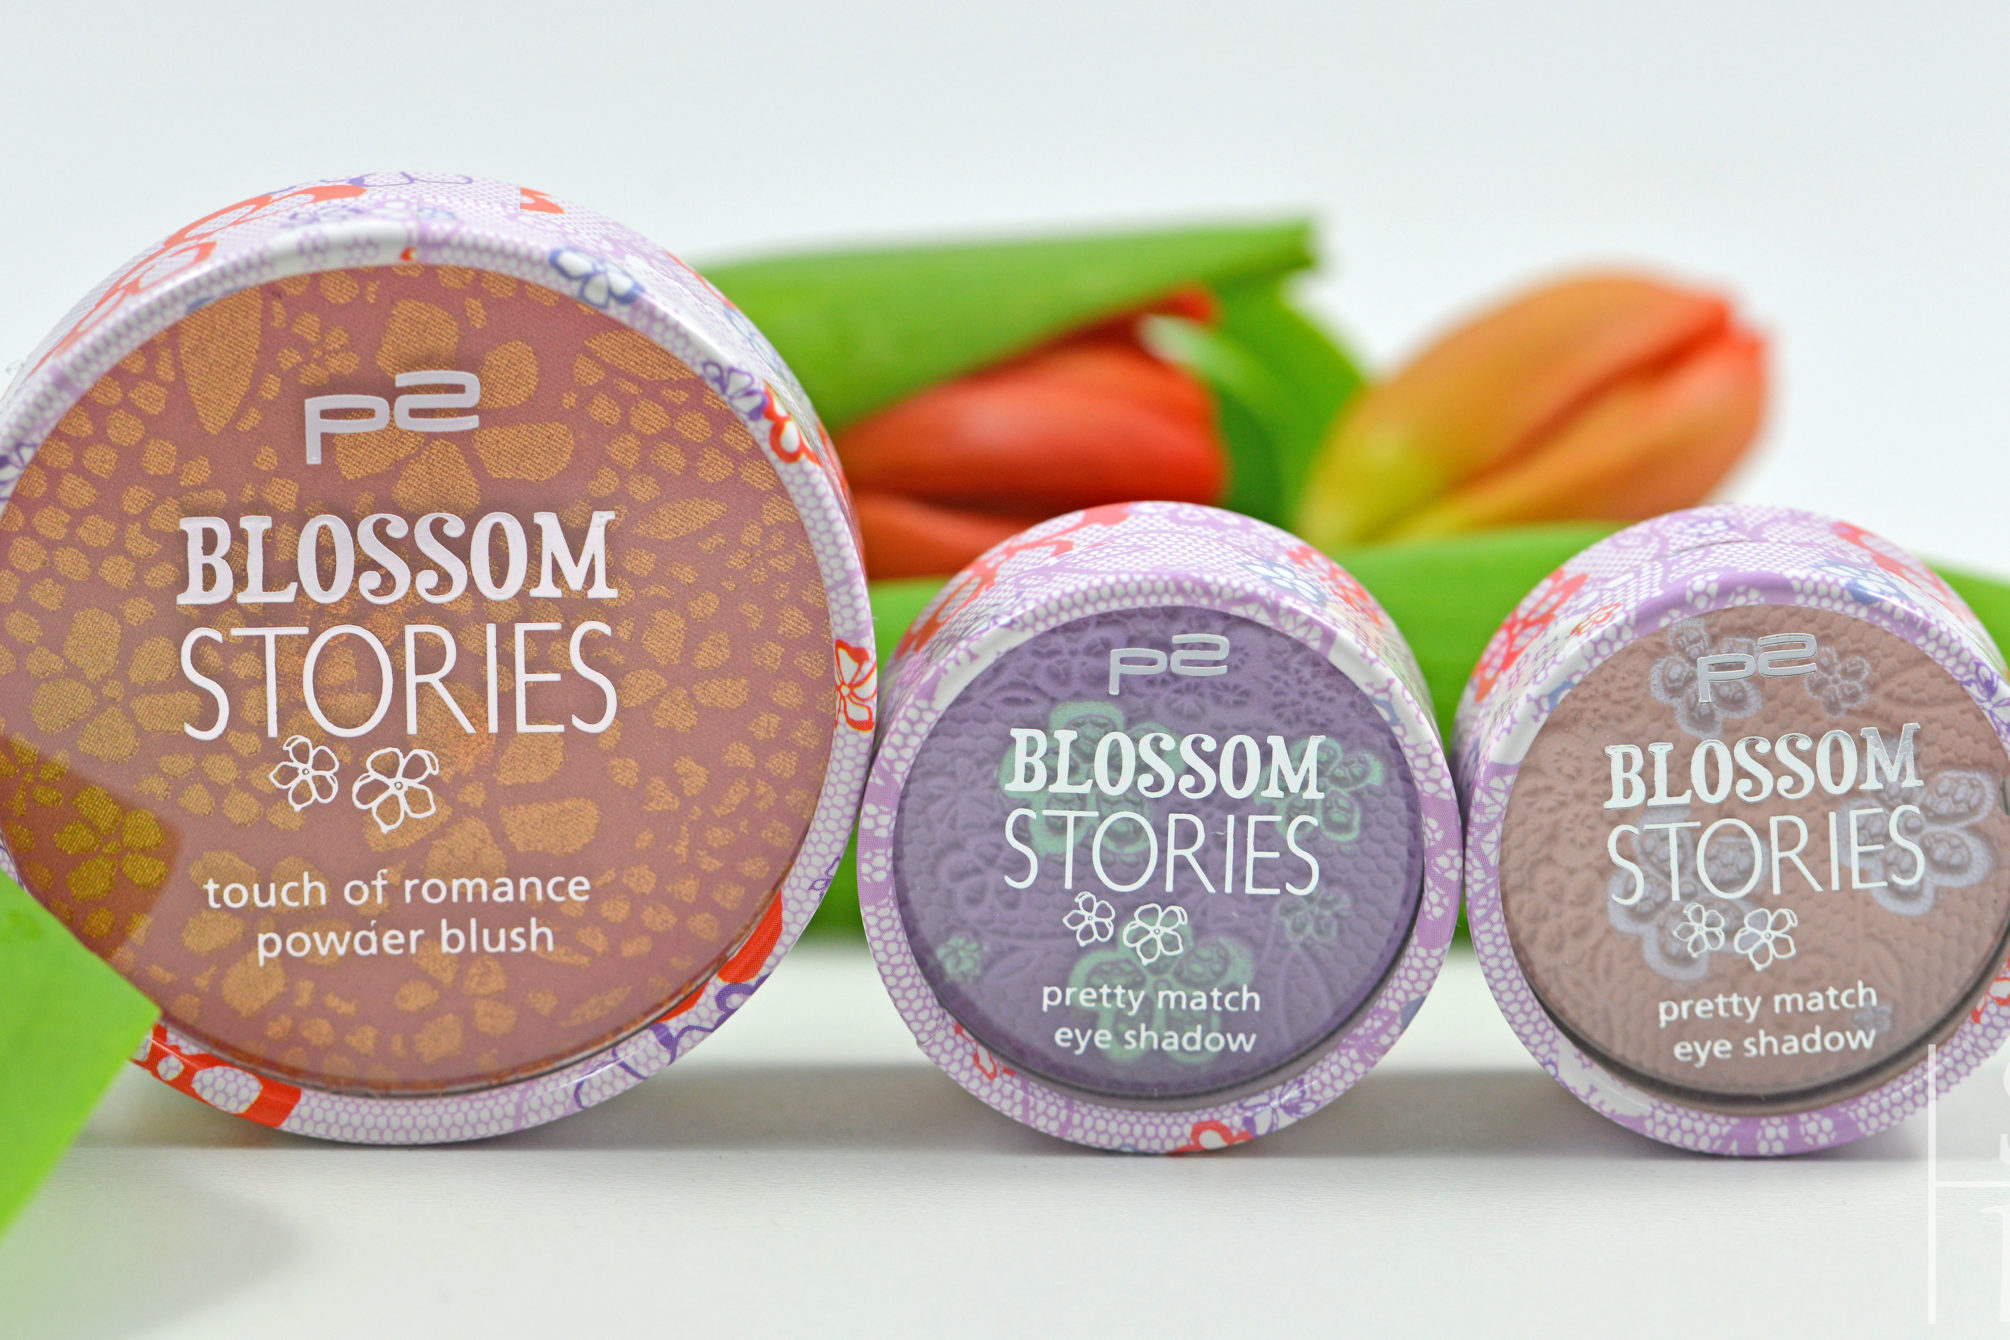 p2 - Blossom Stories LE